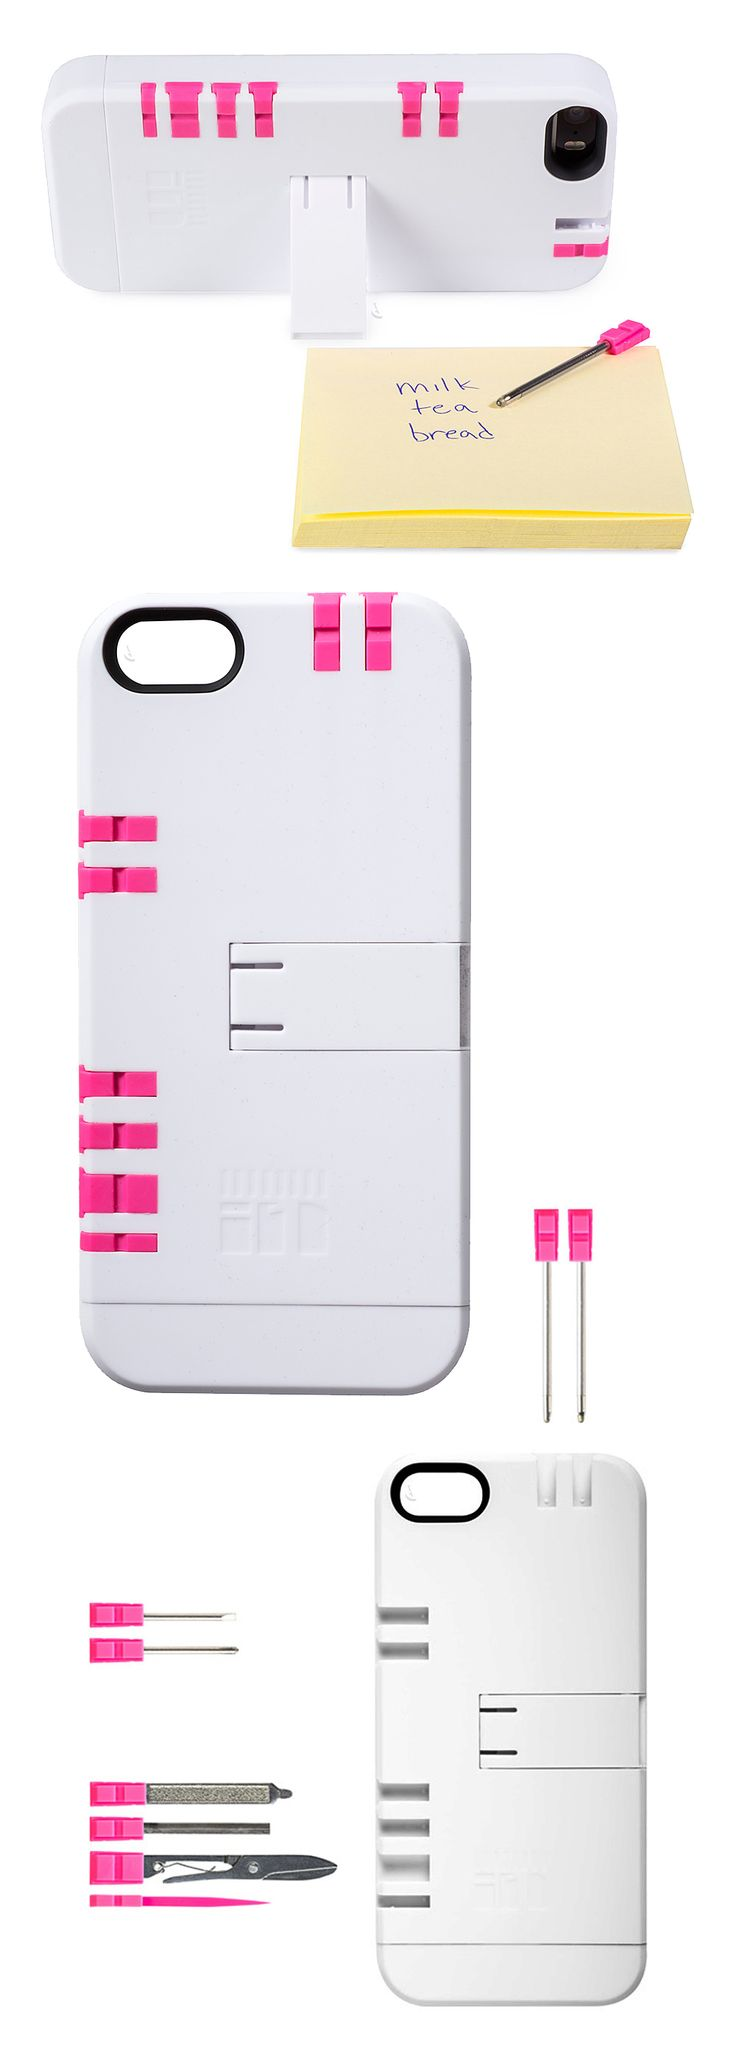 iPhone Toolkit Case // with blue pen, red pen, Phillips screwdriver, flathead screwdriver, kickstand, nail file, tweezers, scissors and toothpick! #product_design